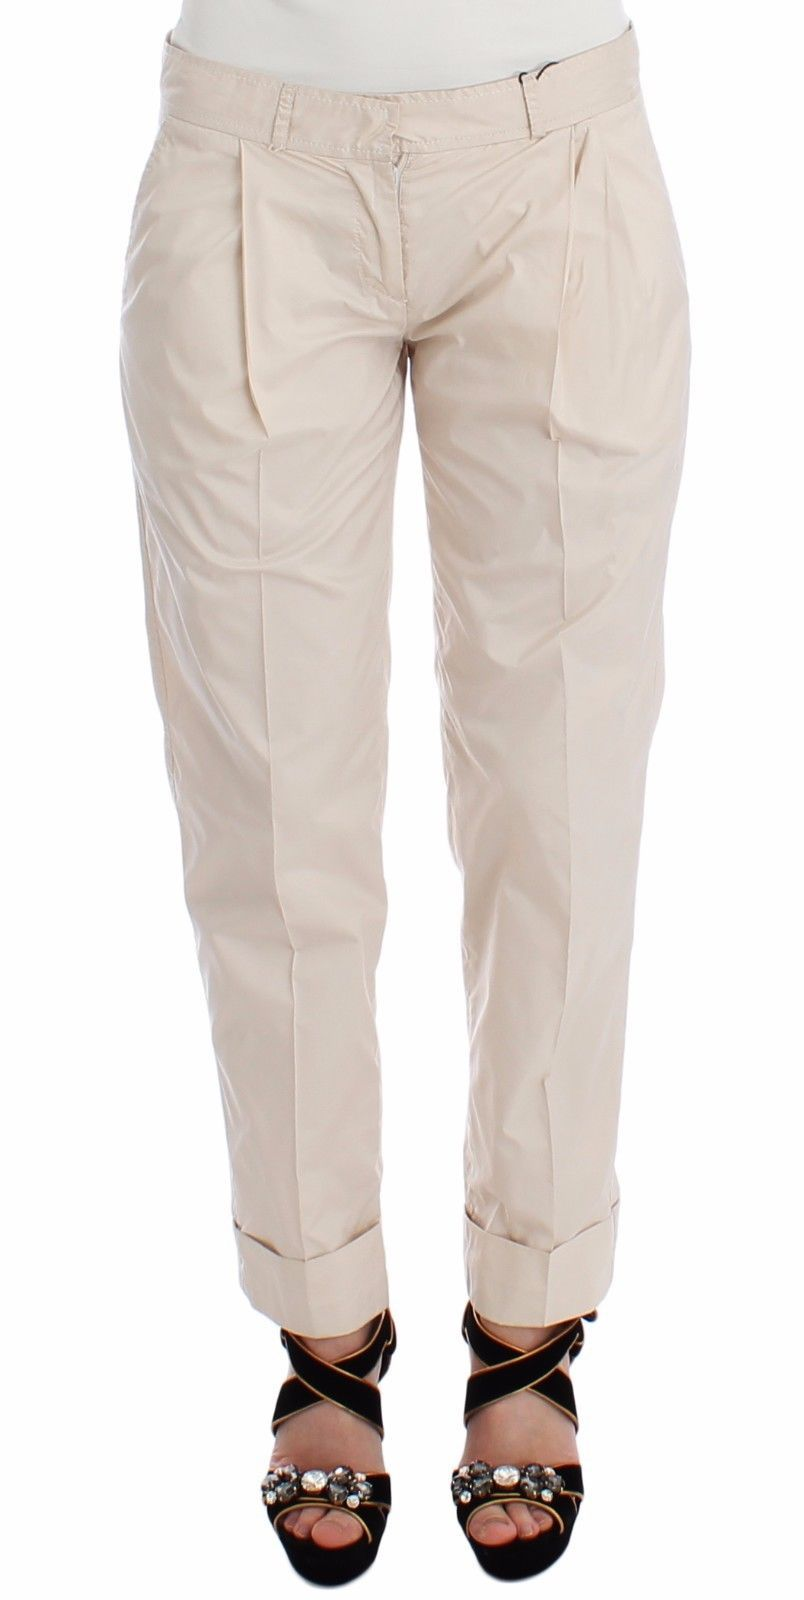 Ermanno Scervino Beige Chinos Casual Dress Pants Khakis